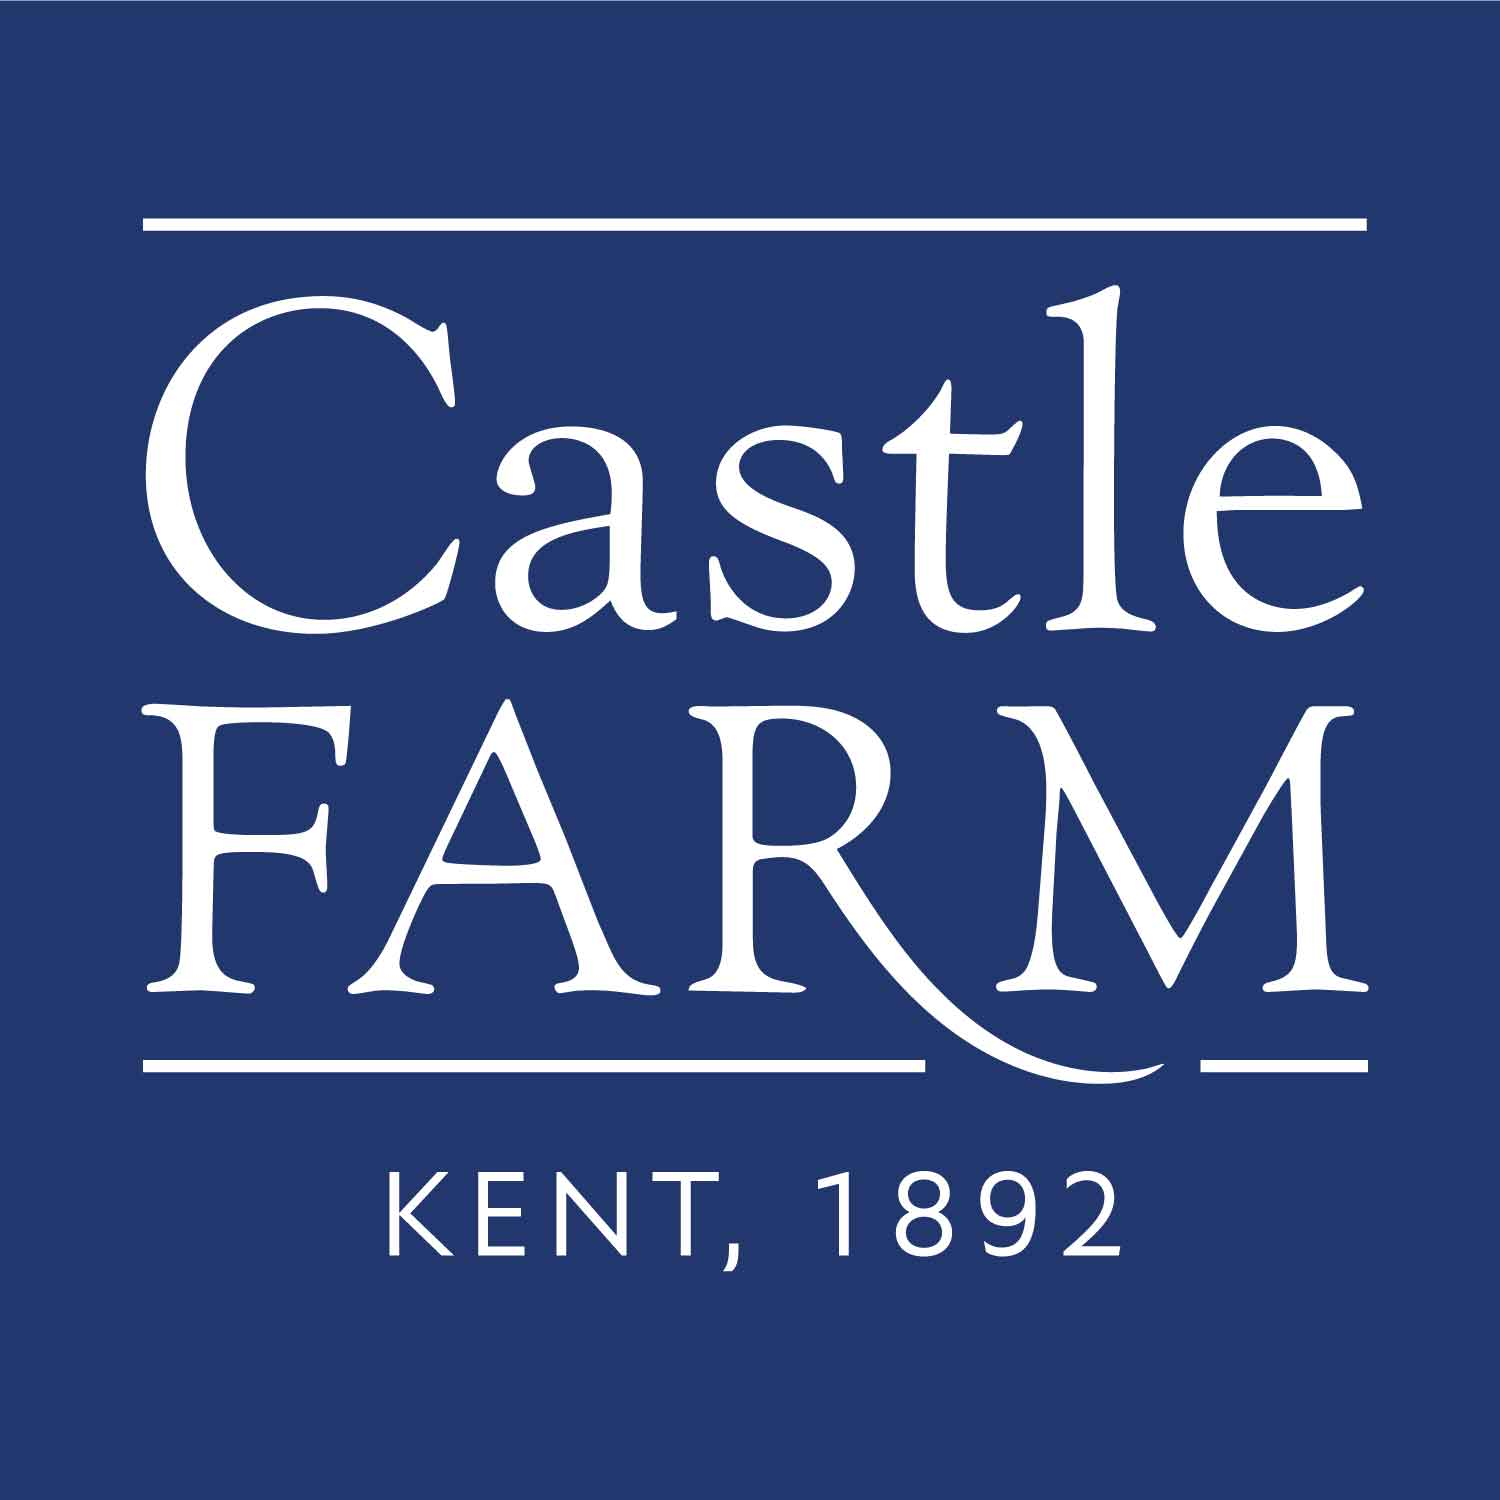 Castle Farm Gift Card